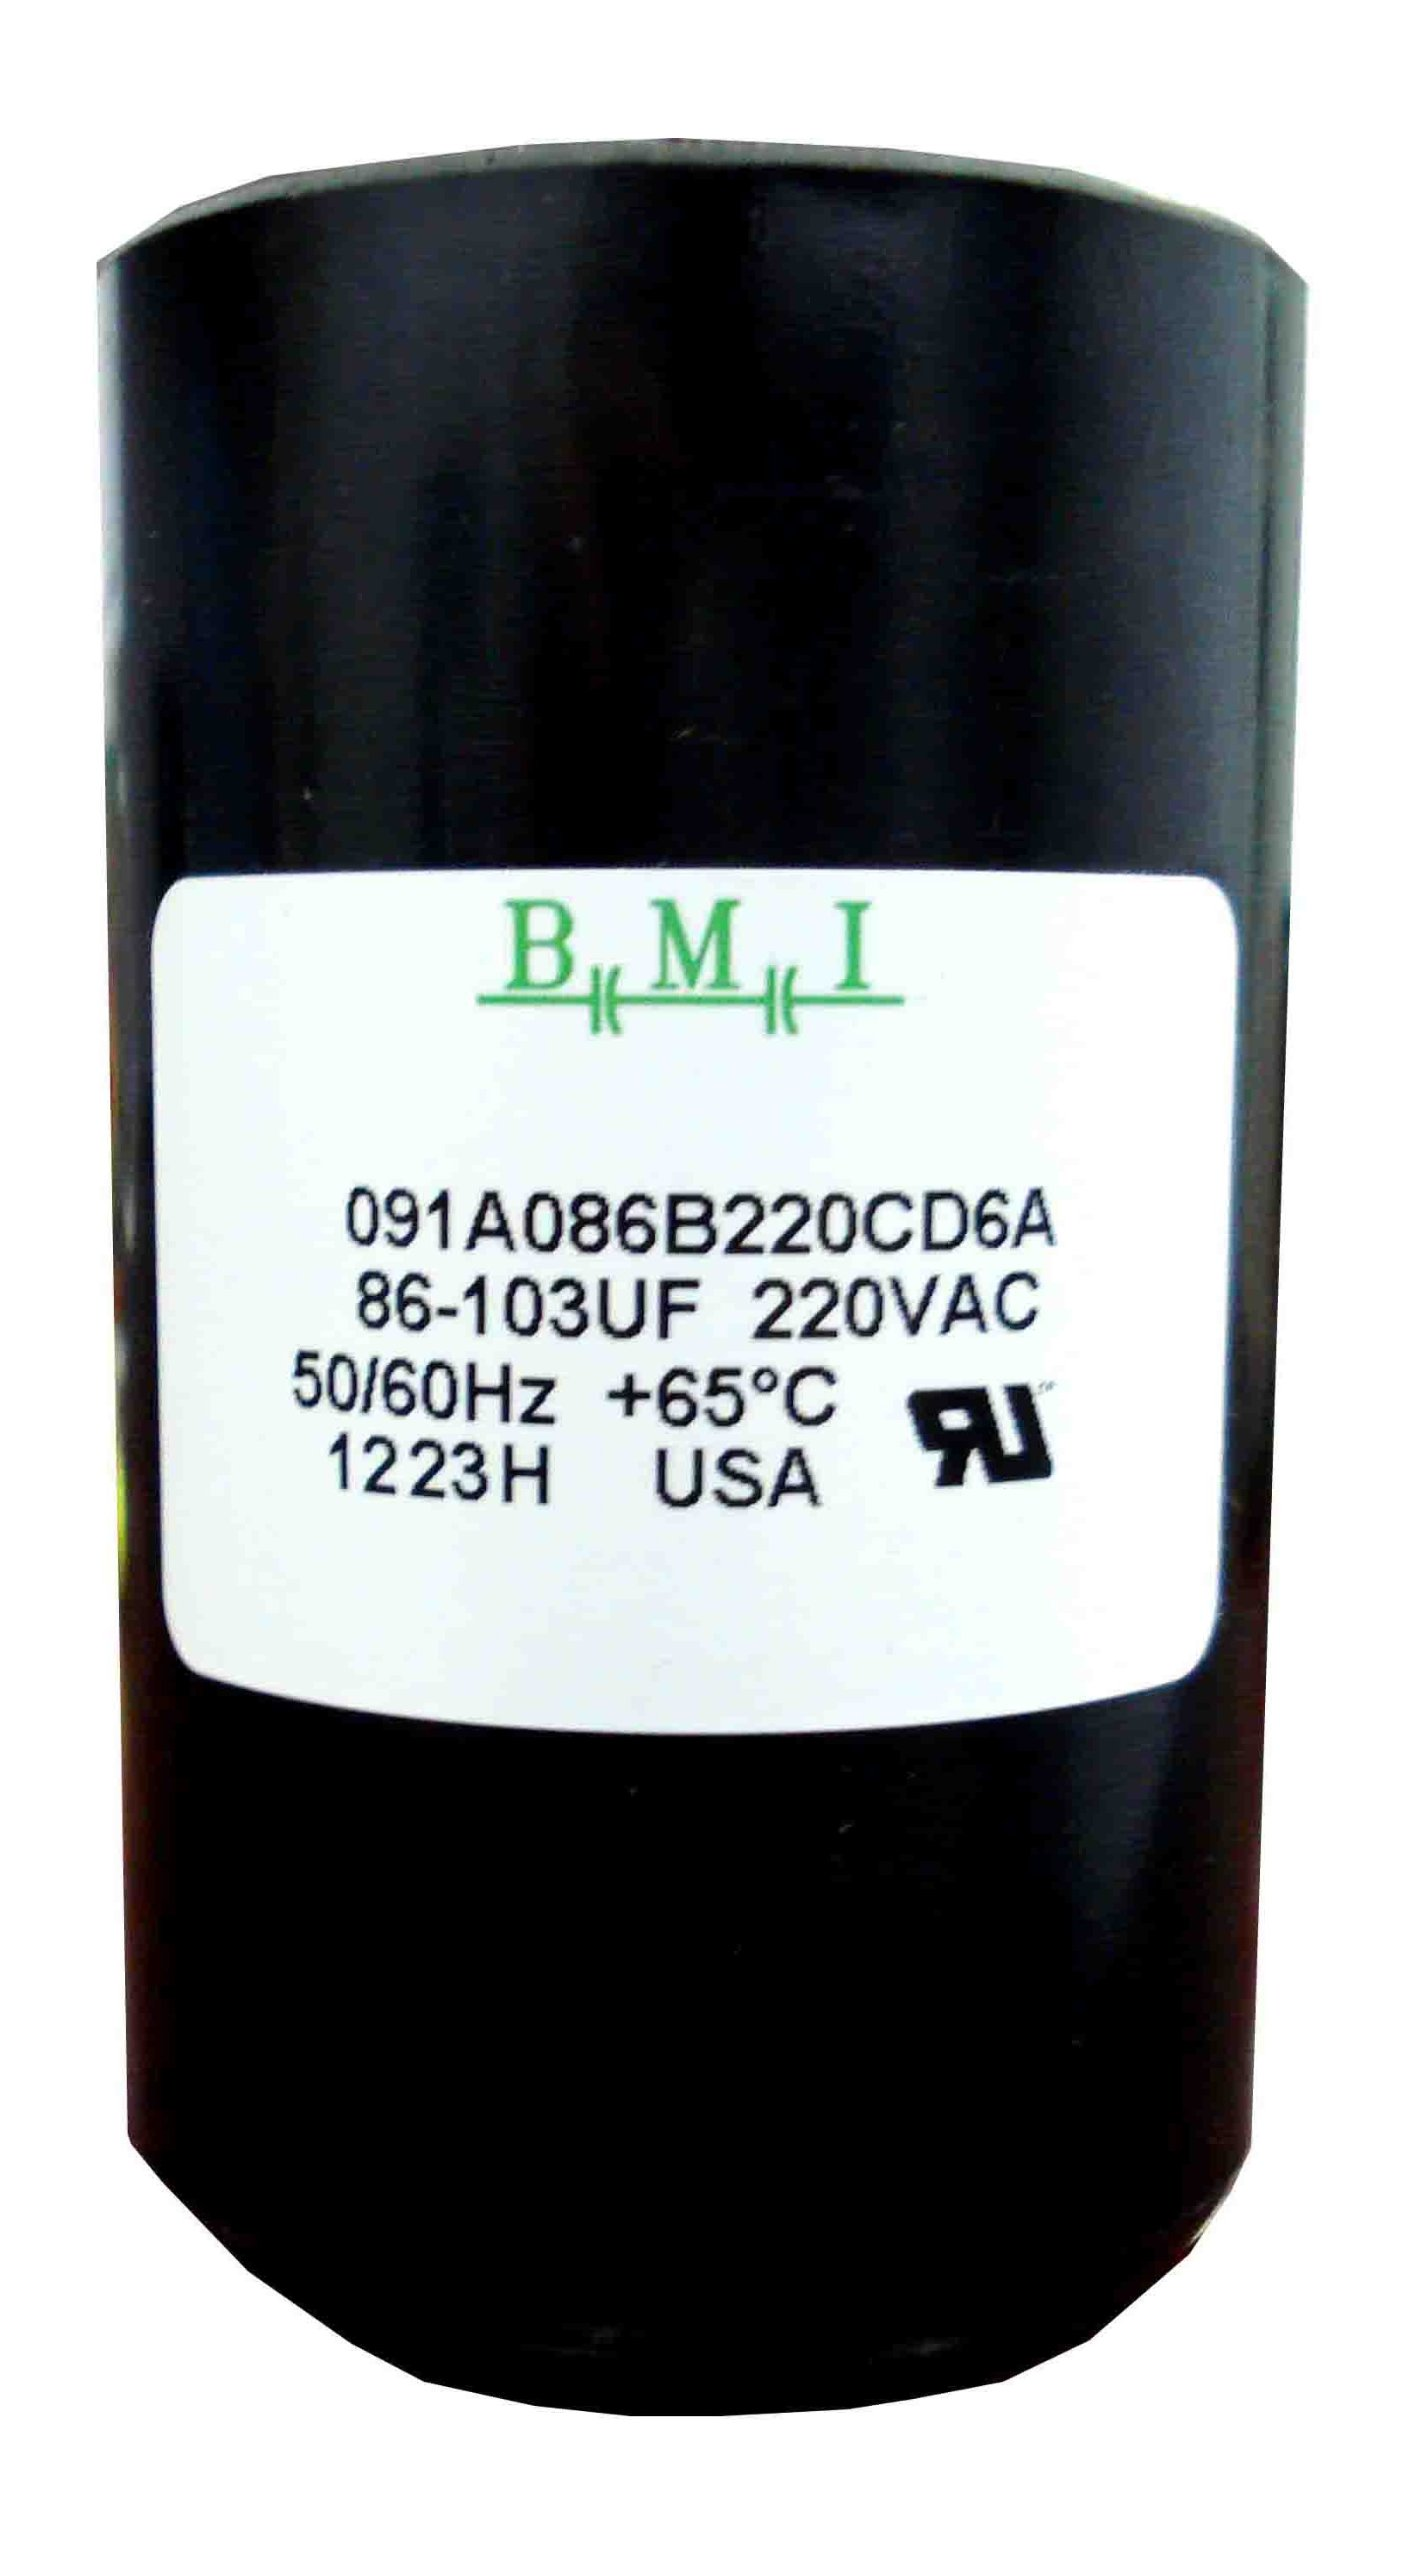 86-103 MFD (uF) 3/4 and 1 HP Well Pump Control Box Motor Start Capacitor 275464118 for Franklin 2801074915, CRC 2824085015 . New by BarkerMicrofarads (Image #1)